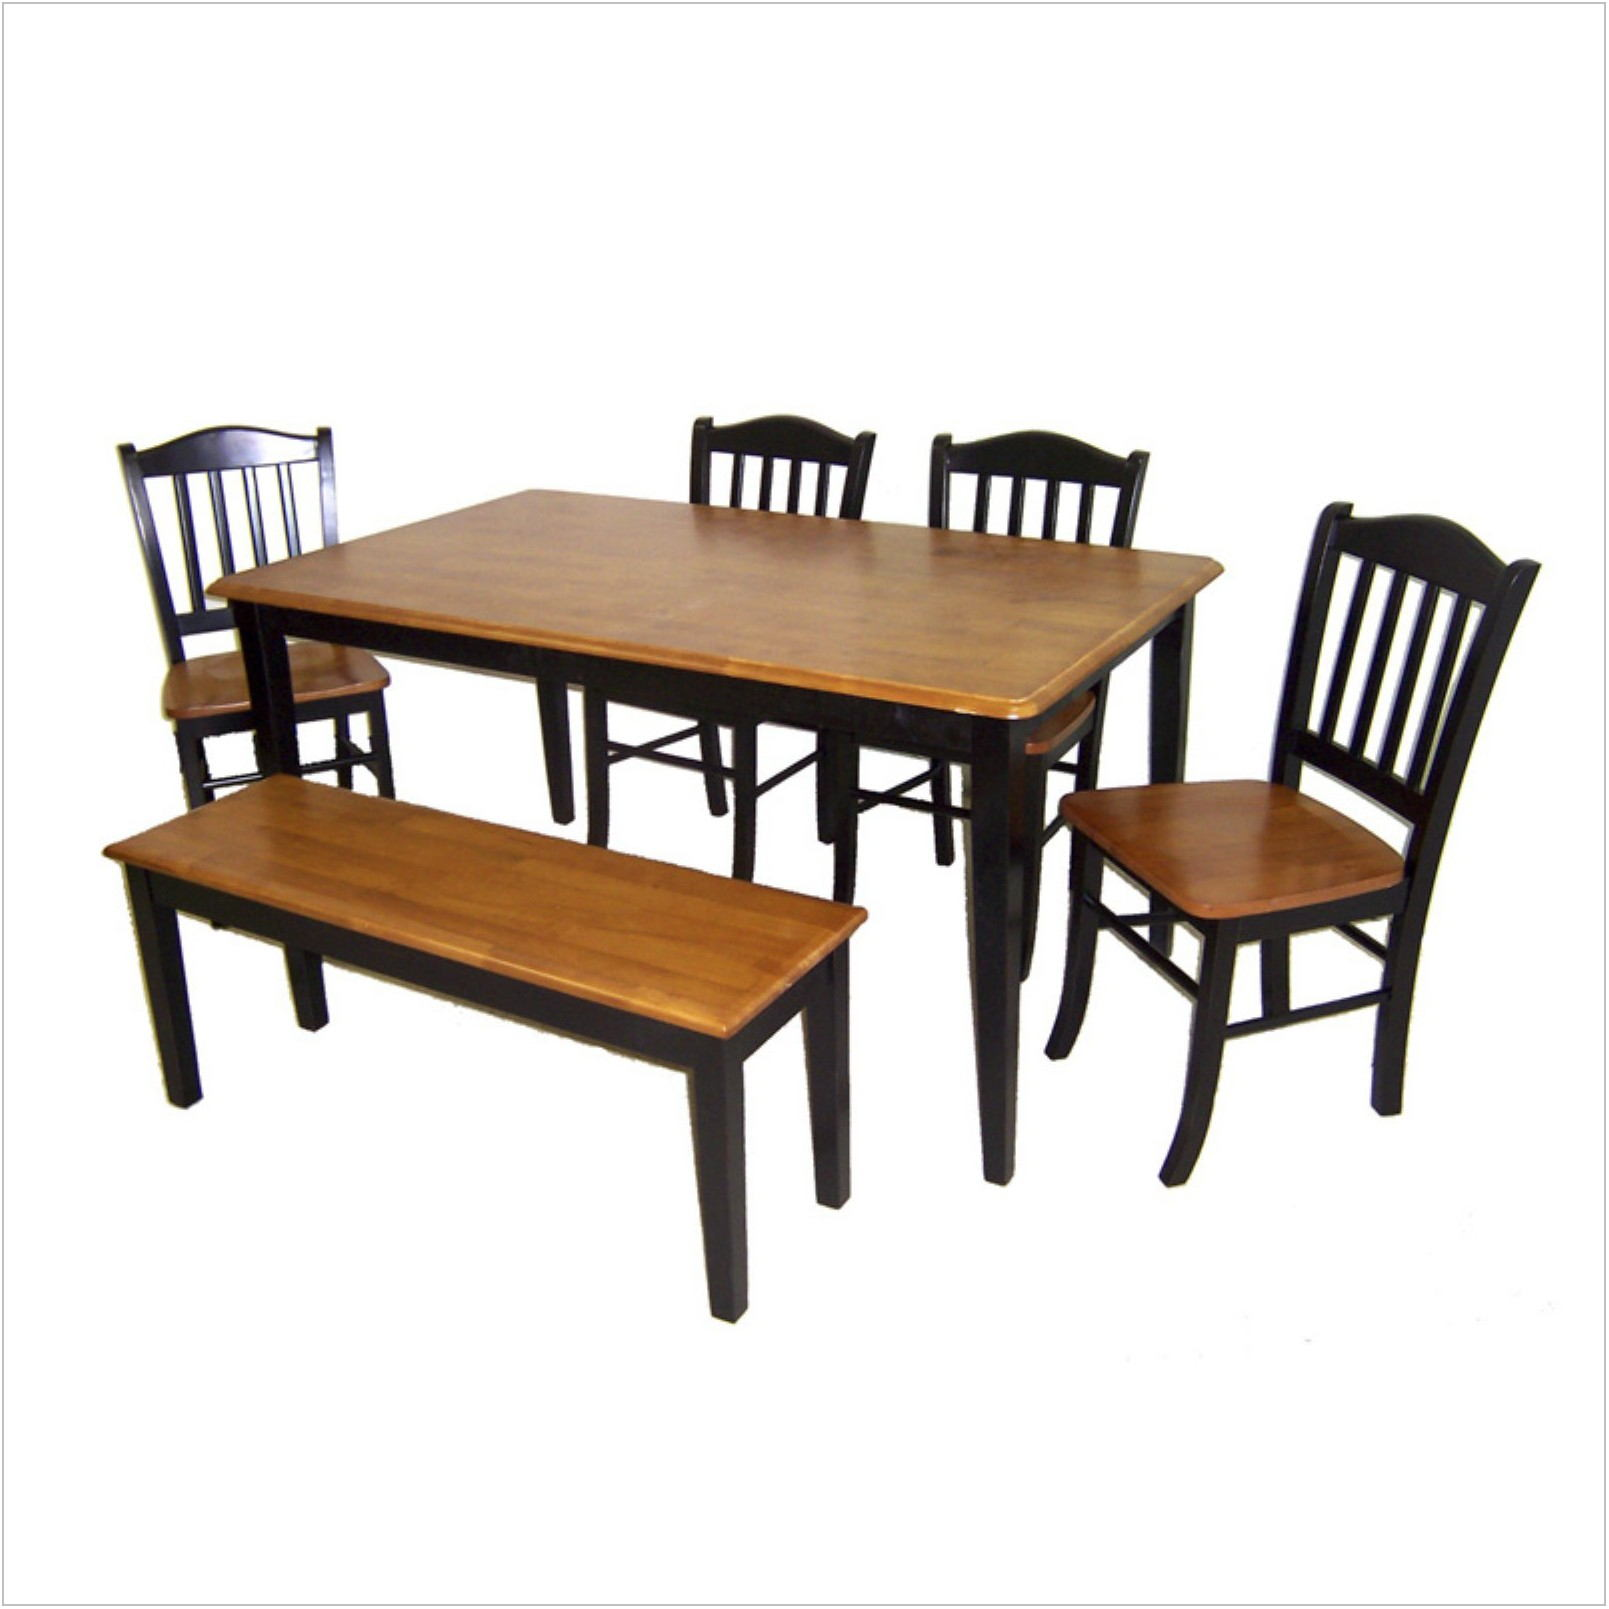 Shaker Dining Room Chairs